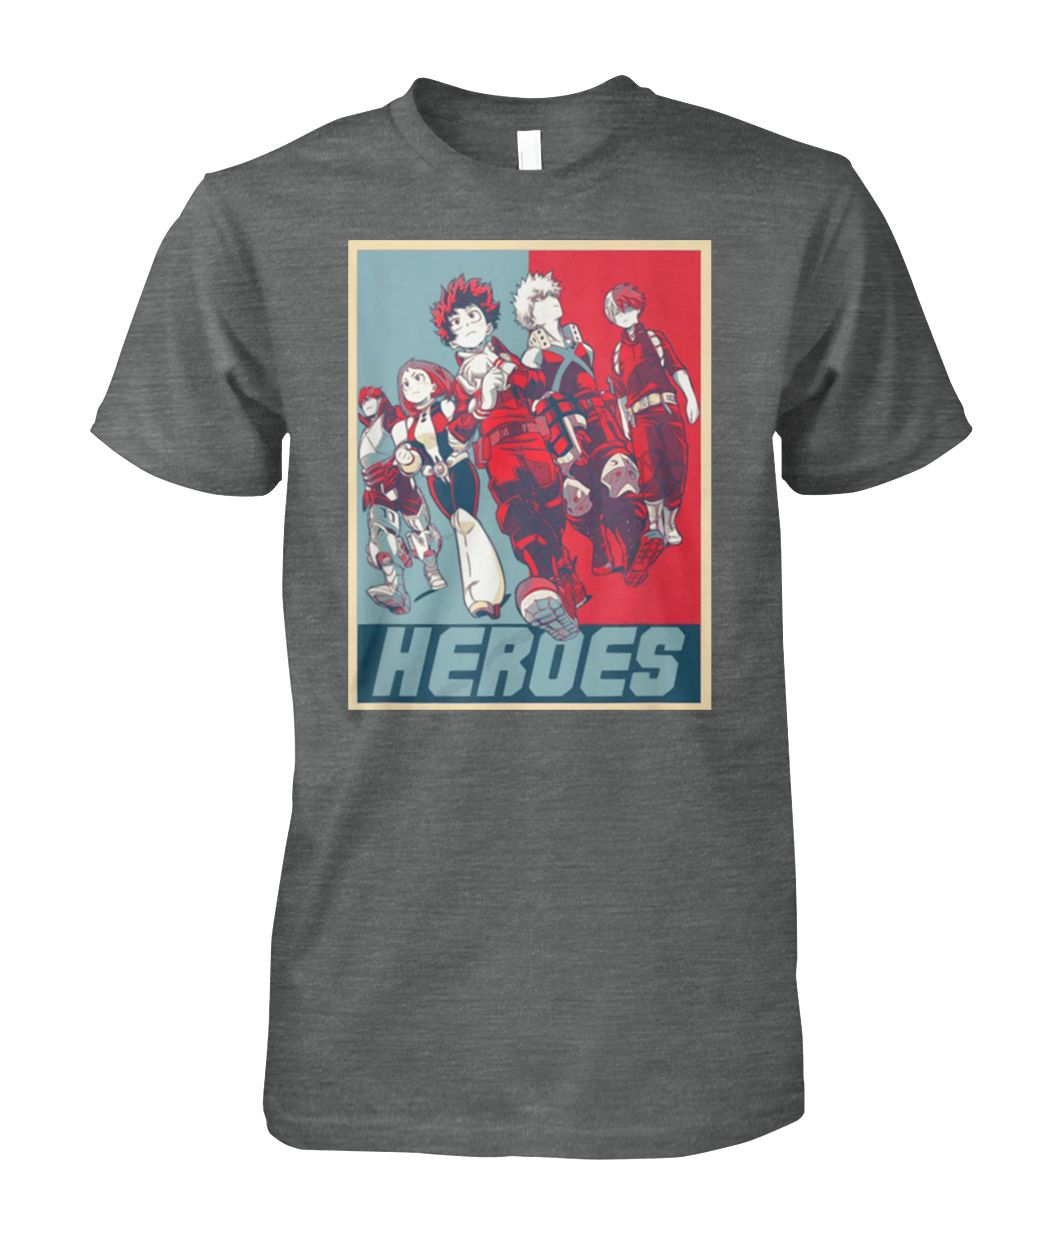 [Hot version] My hero academia the movie the two heroes shirt